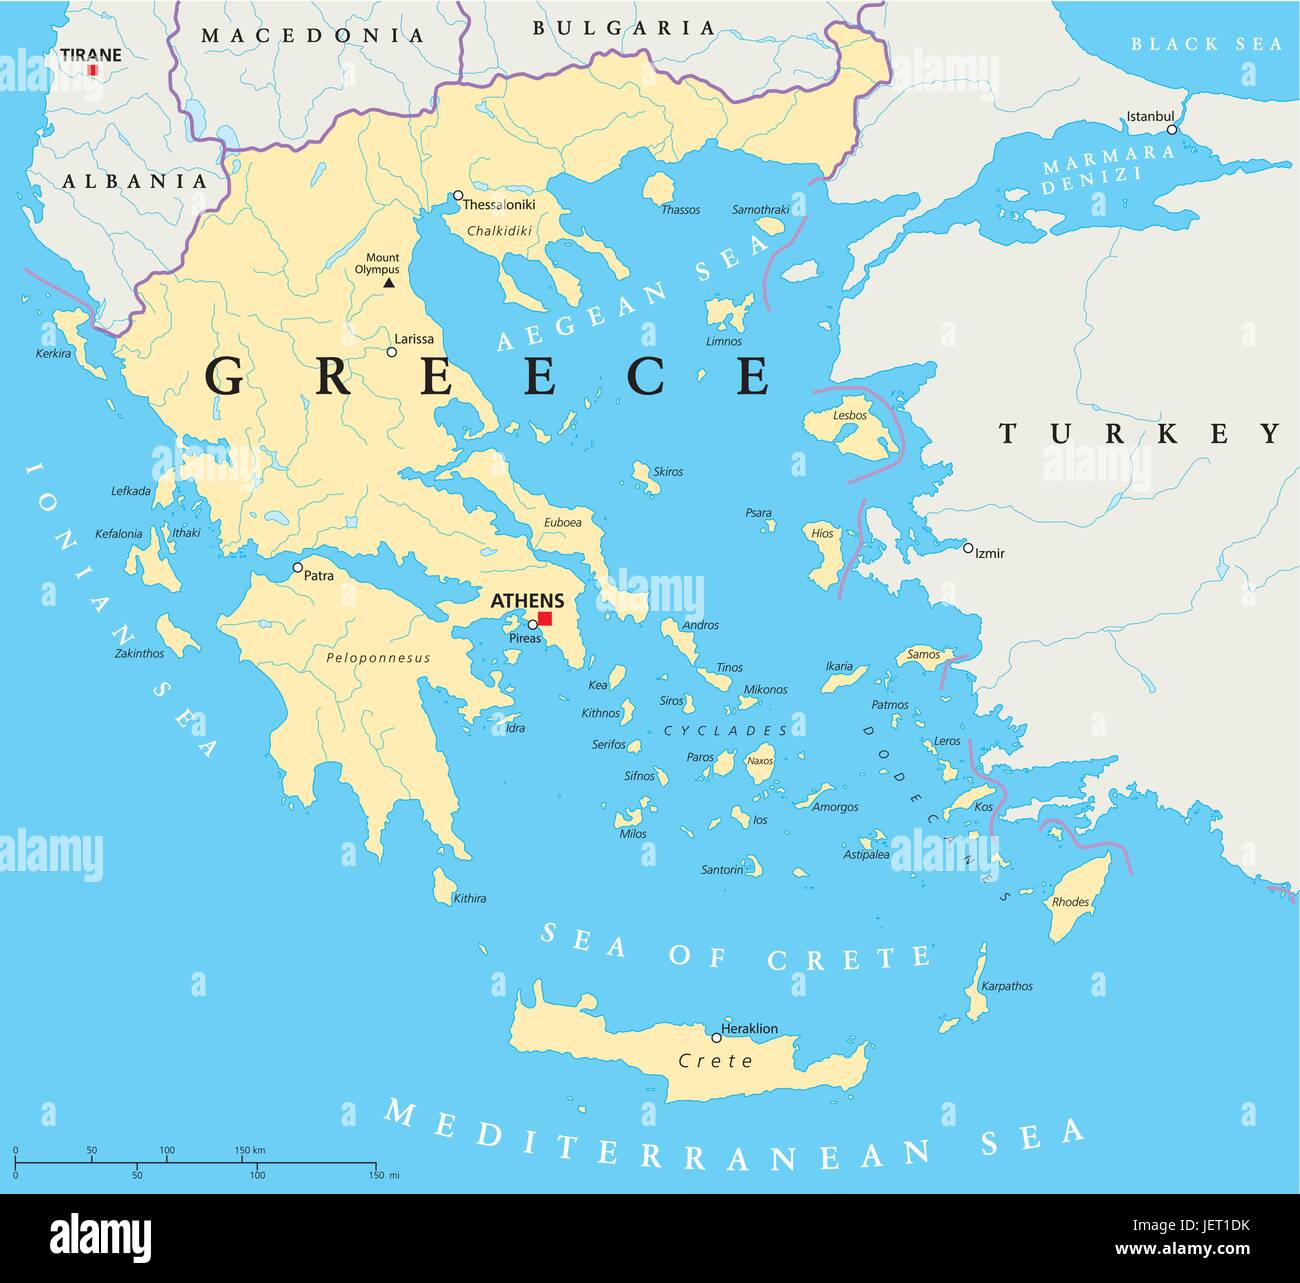 Political greece greek athens map atlas map of the world political greece greek athens map atlas map of the world political gumiabroncs Image collections